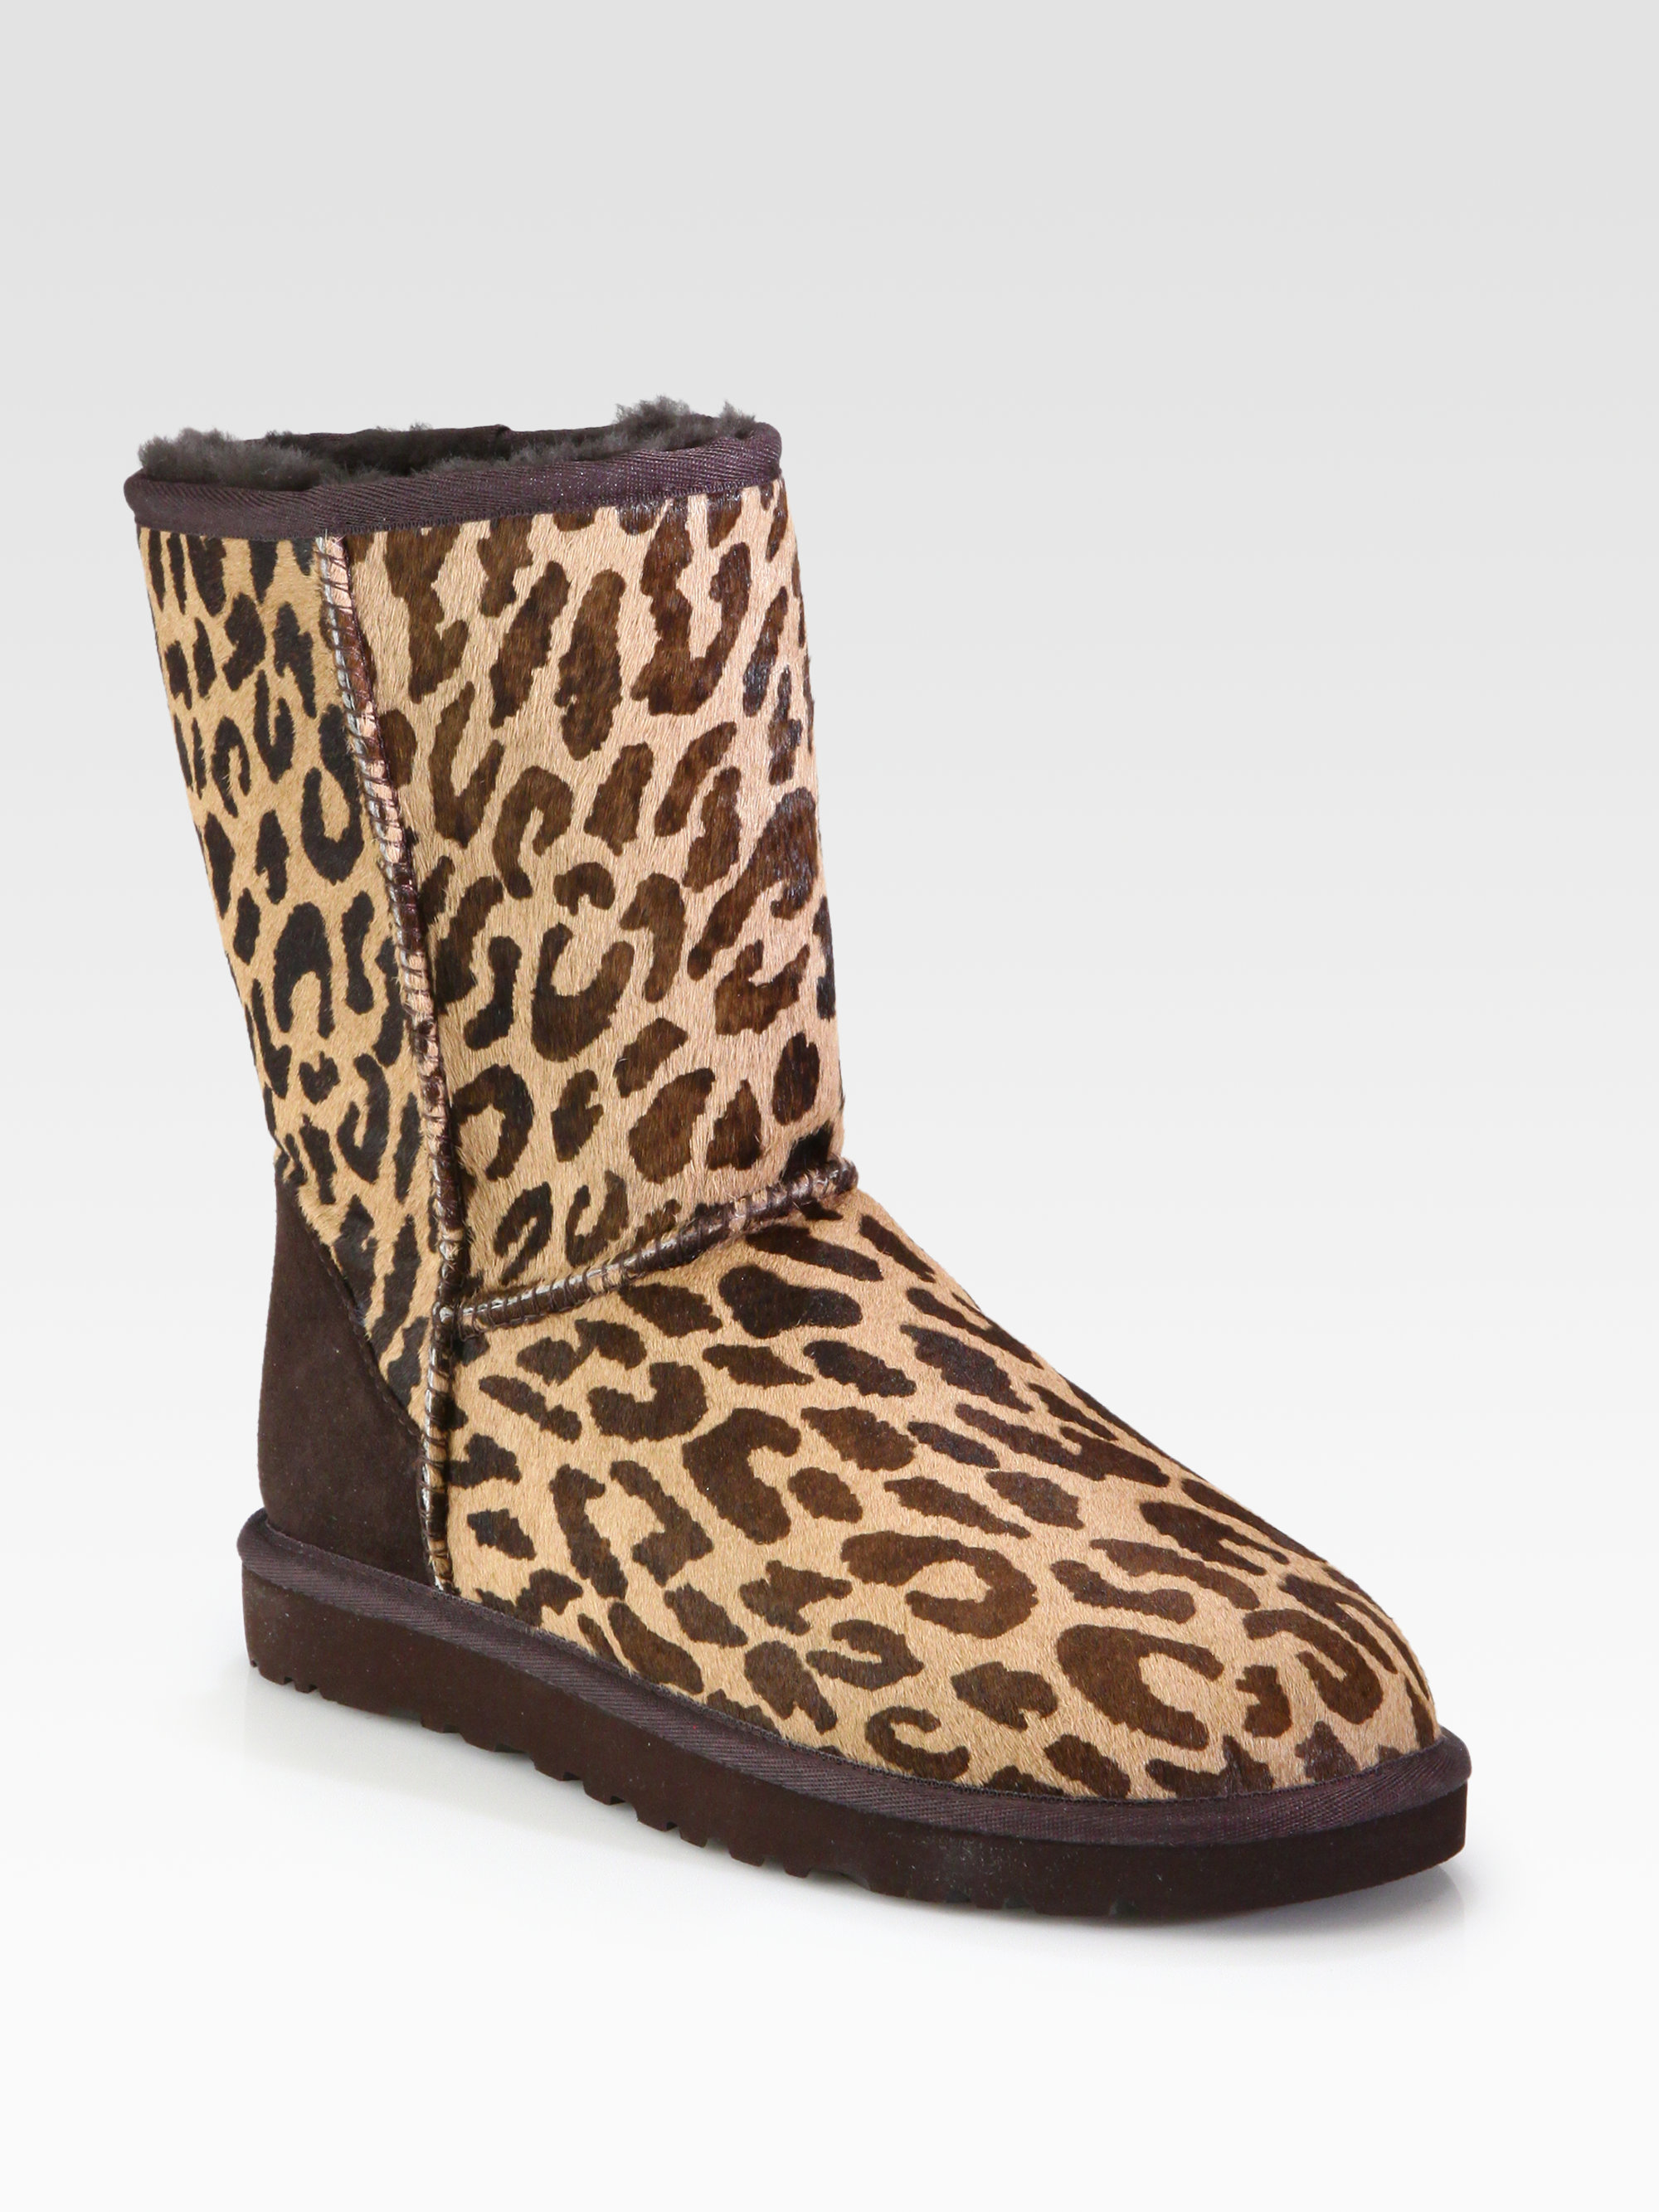 7ba883f3ccd6 Lyst - UGG Classic Short Leopardprint Calf Hair Boots in Brown